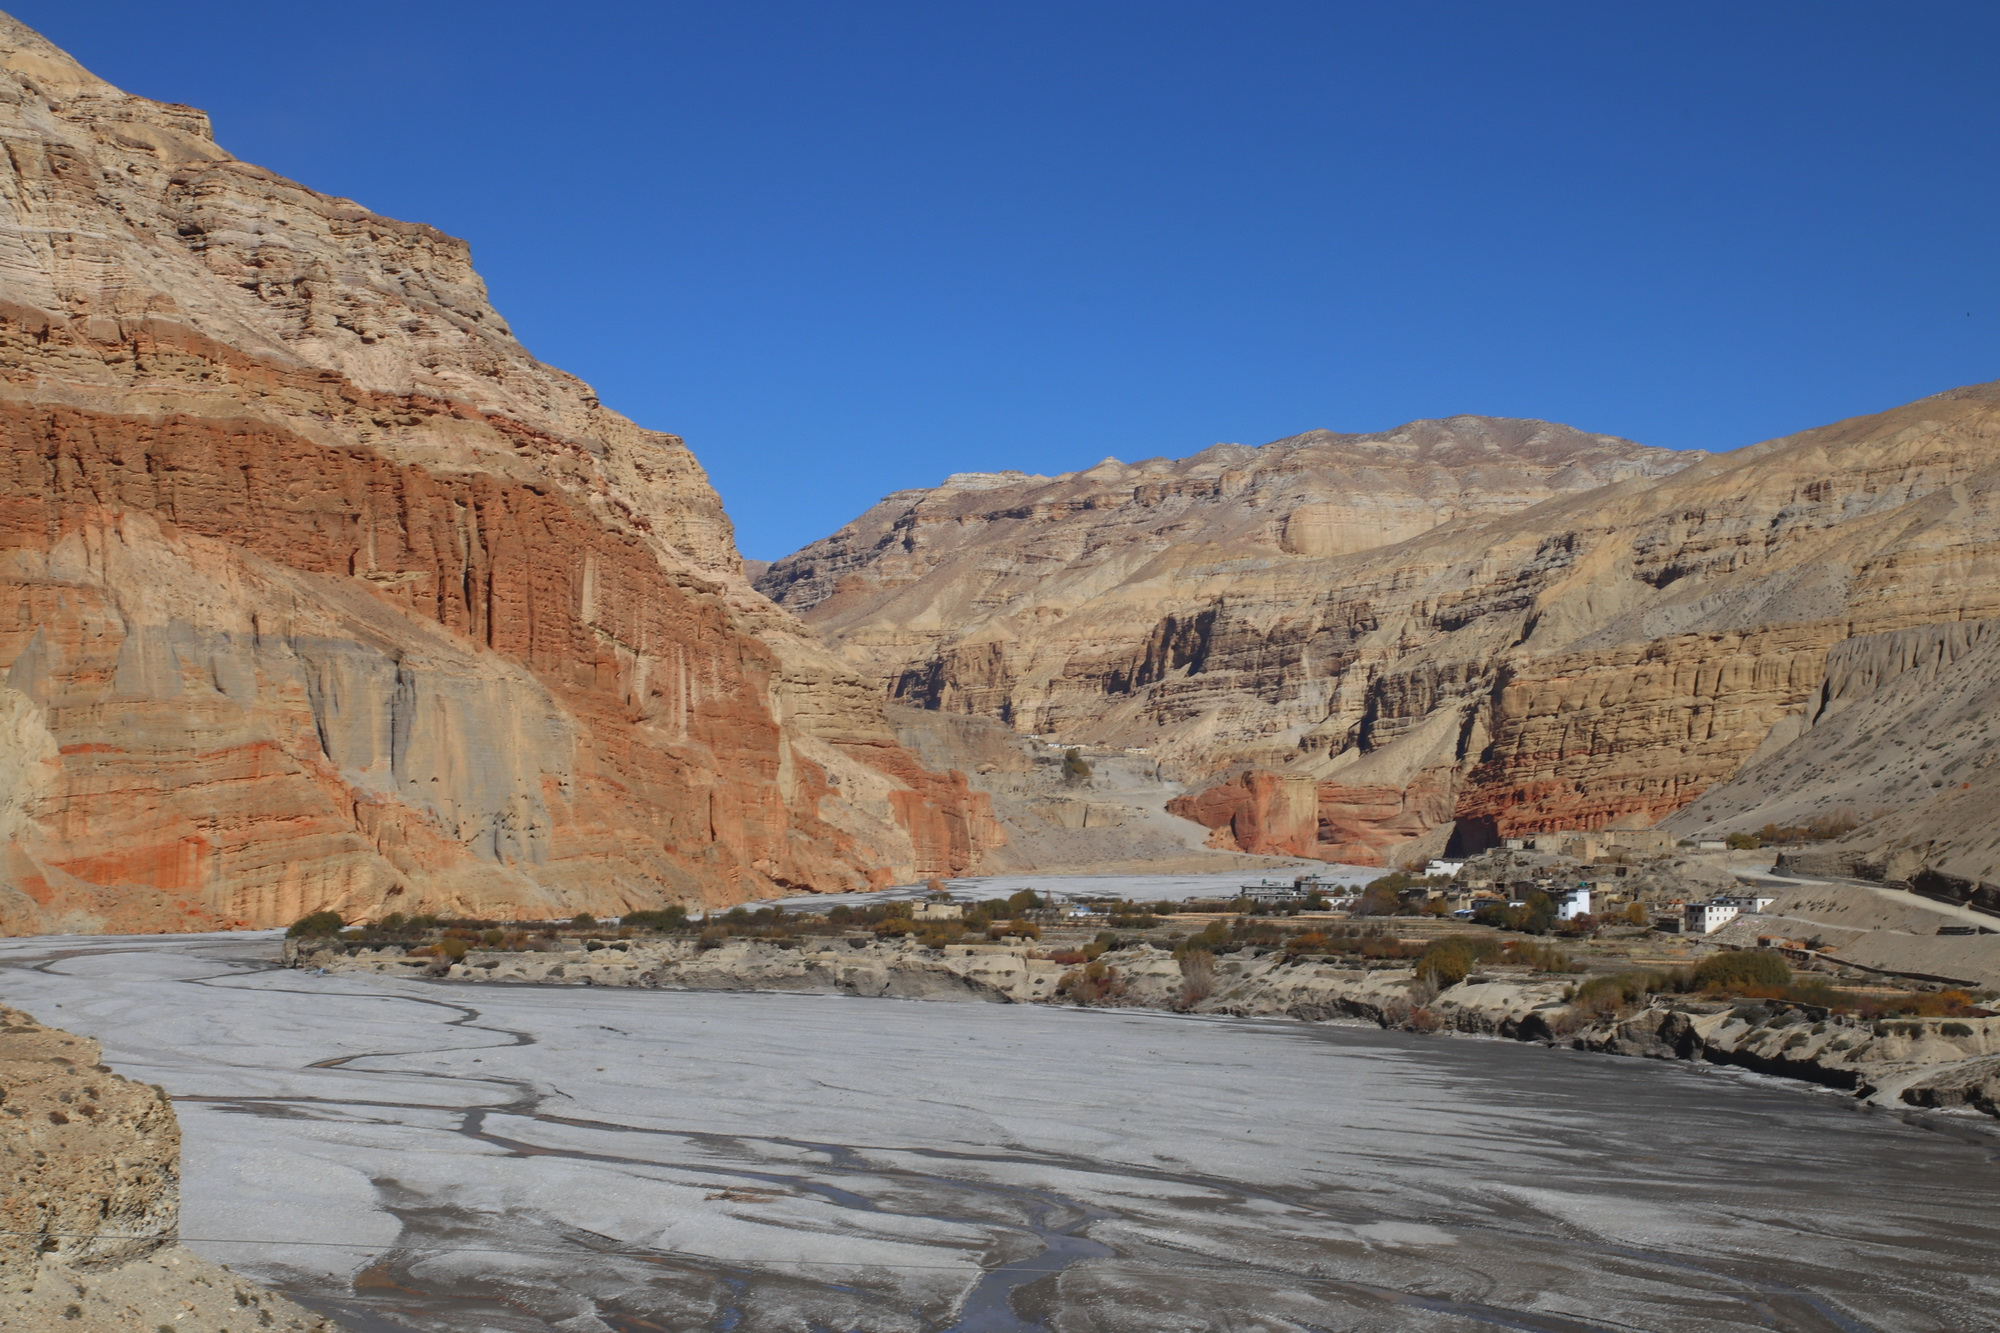 Chhusang in Upper Mustang